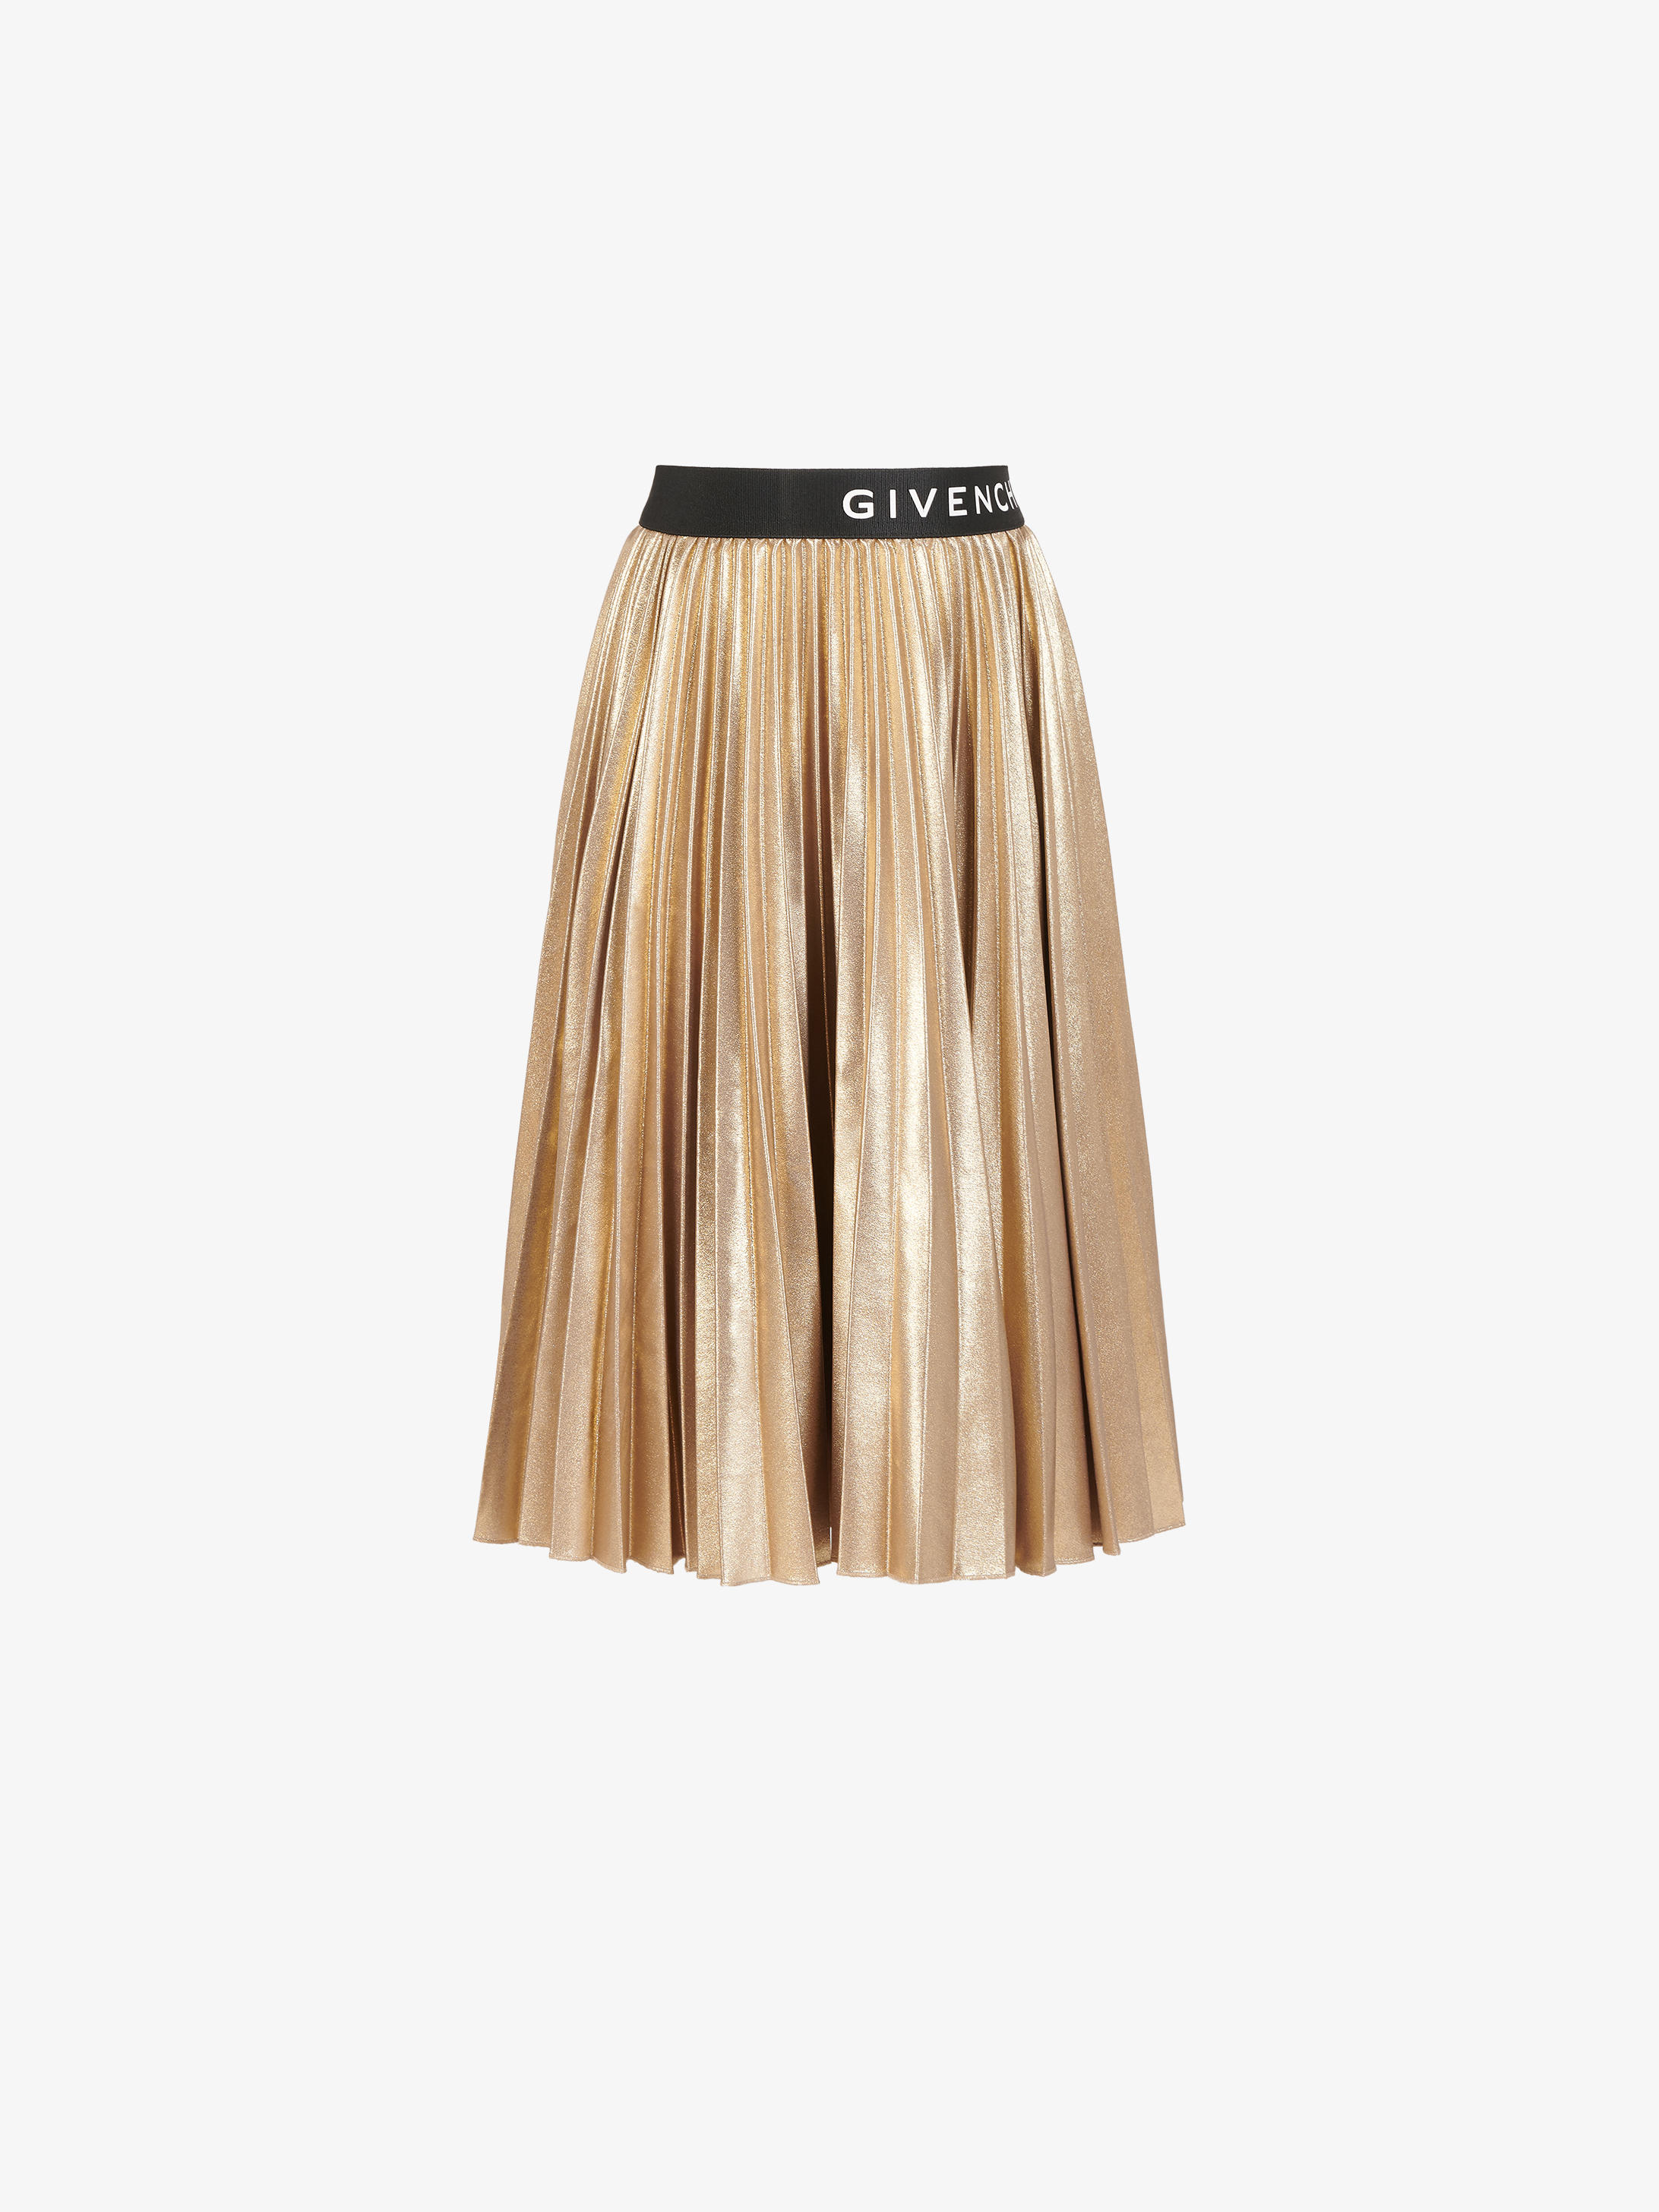 GIVENCHY skirt in pleated lamé